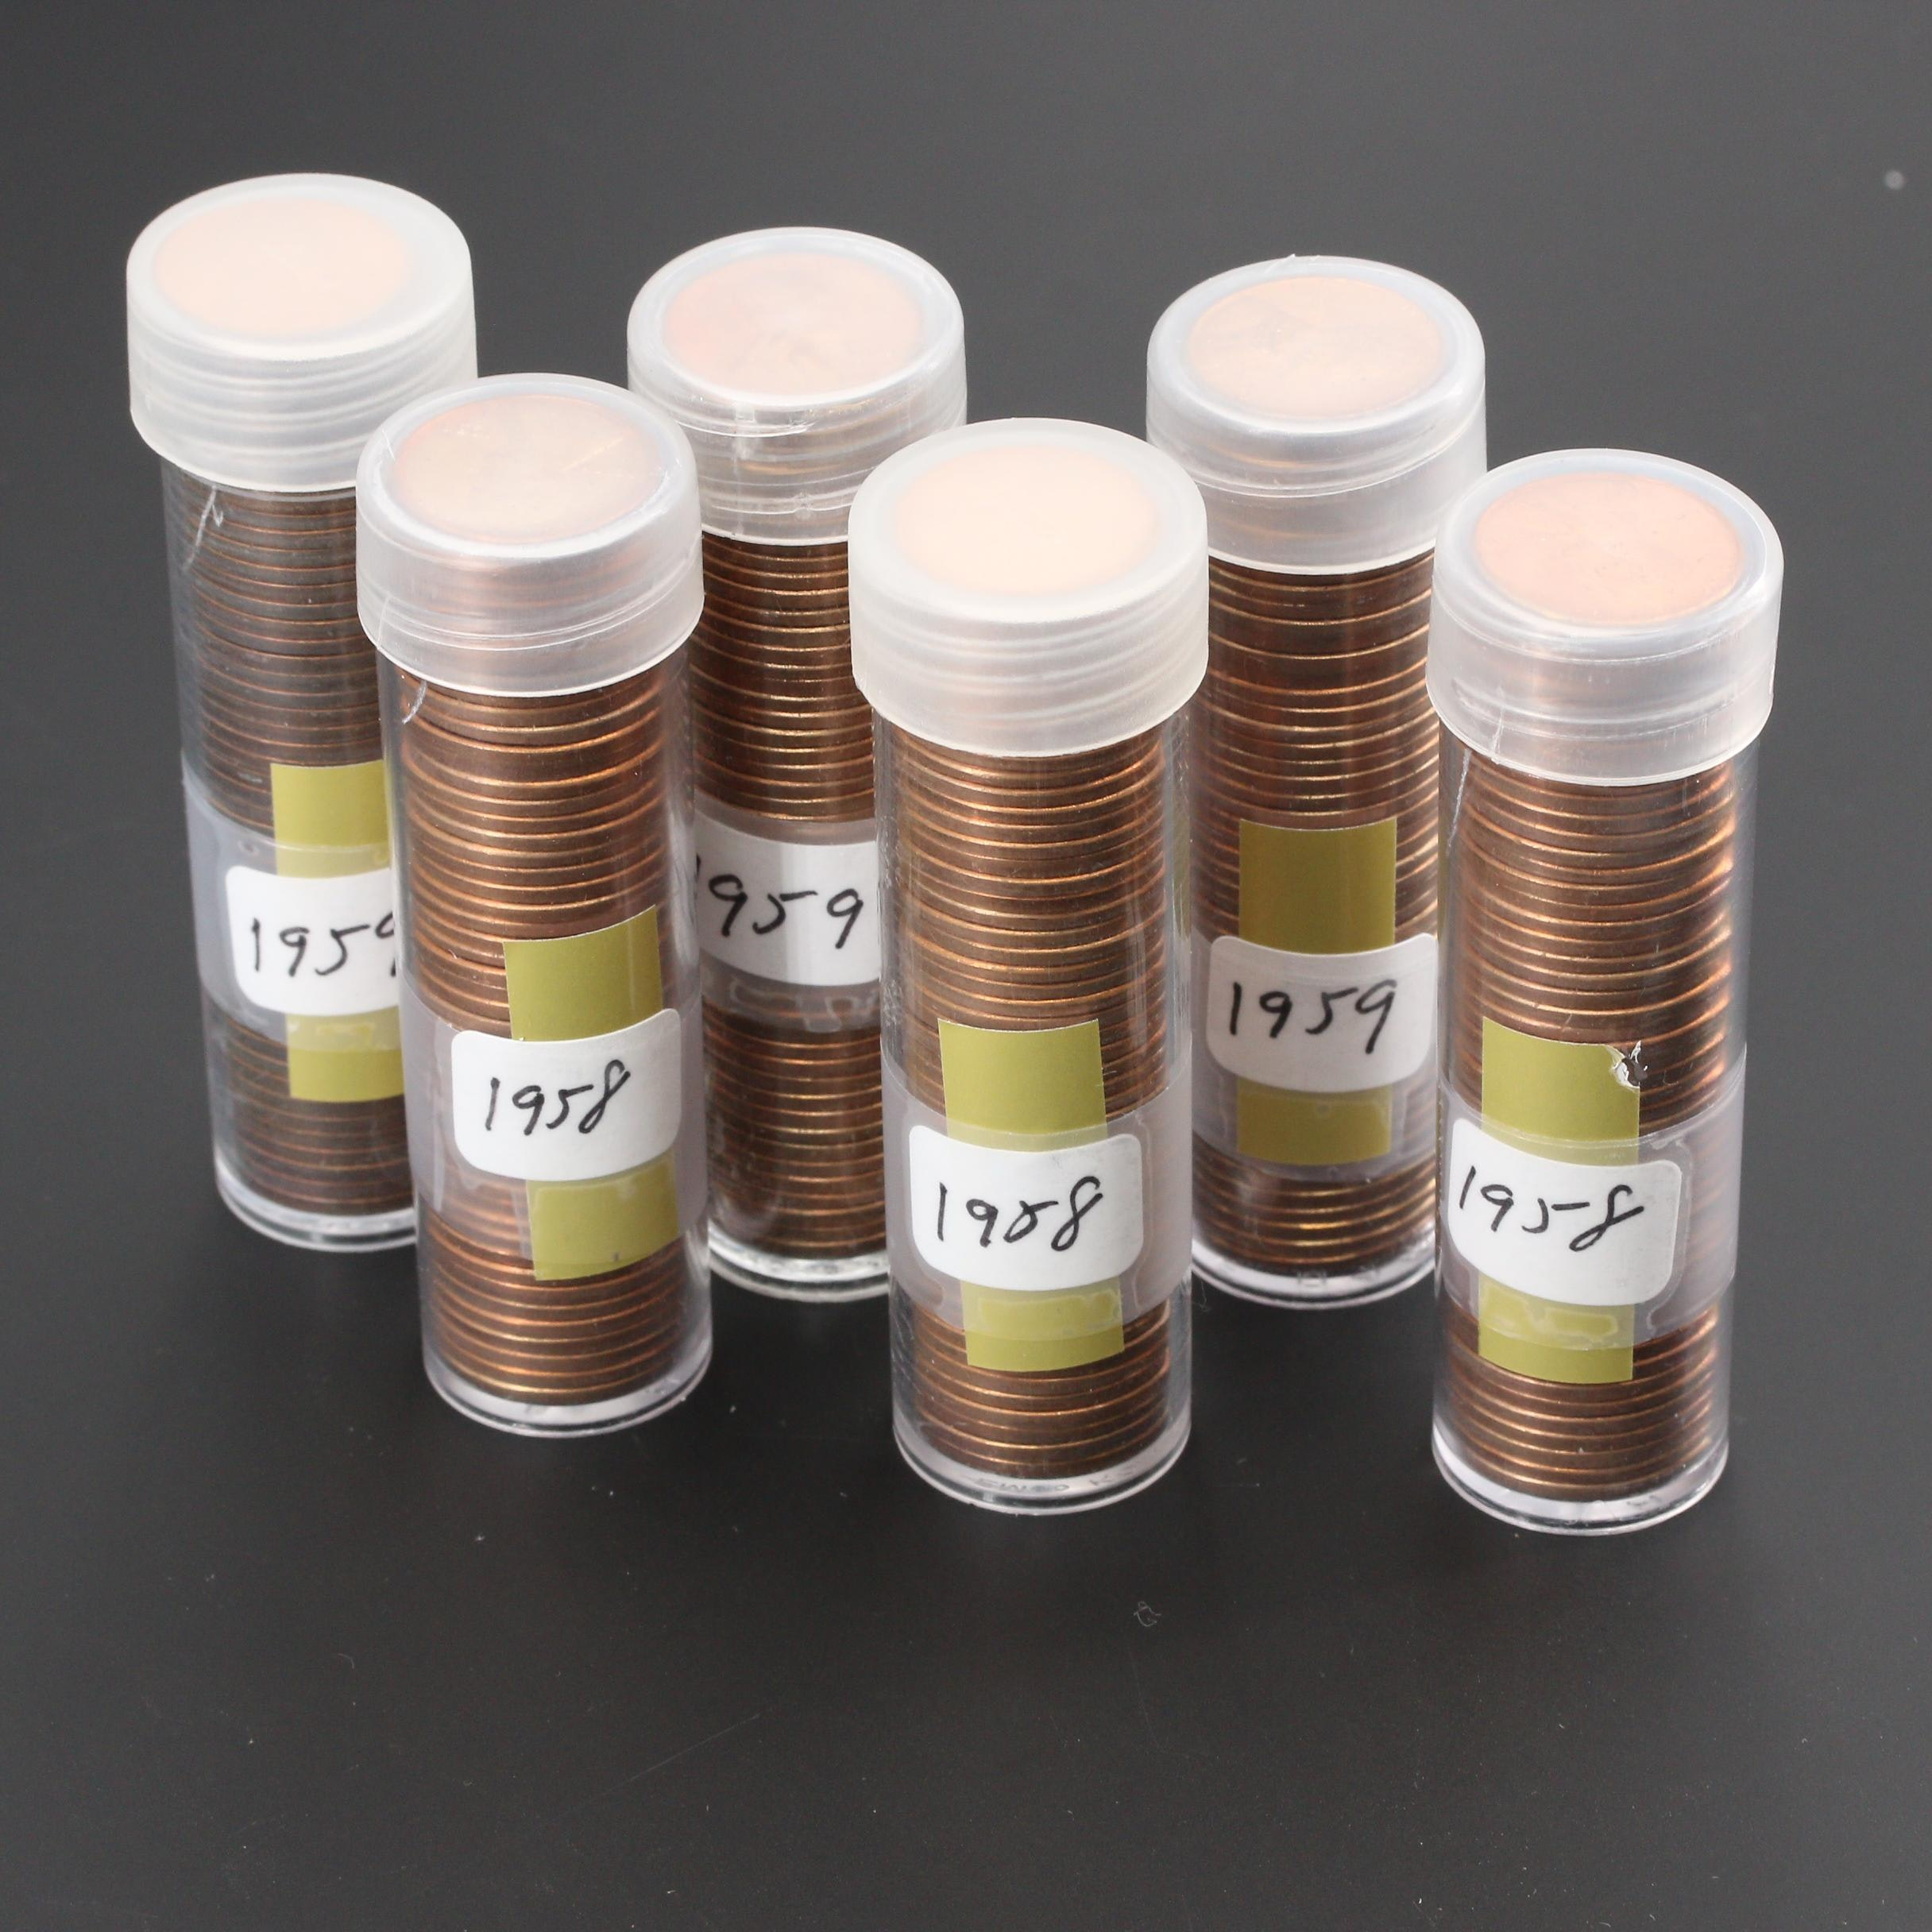 Group of Six Rolls of Uncirculated Lincoln Cents from 1958 and 1959